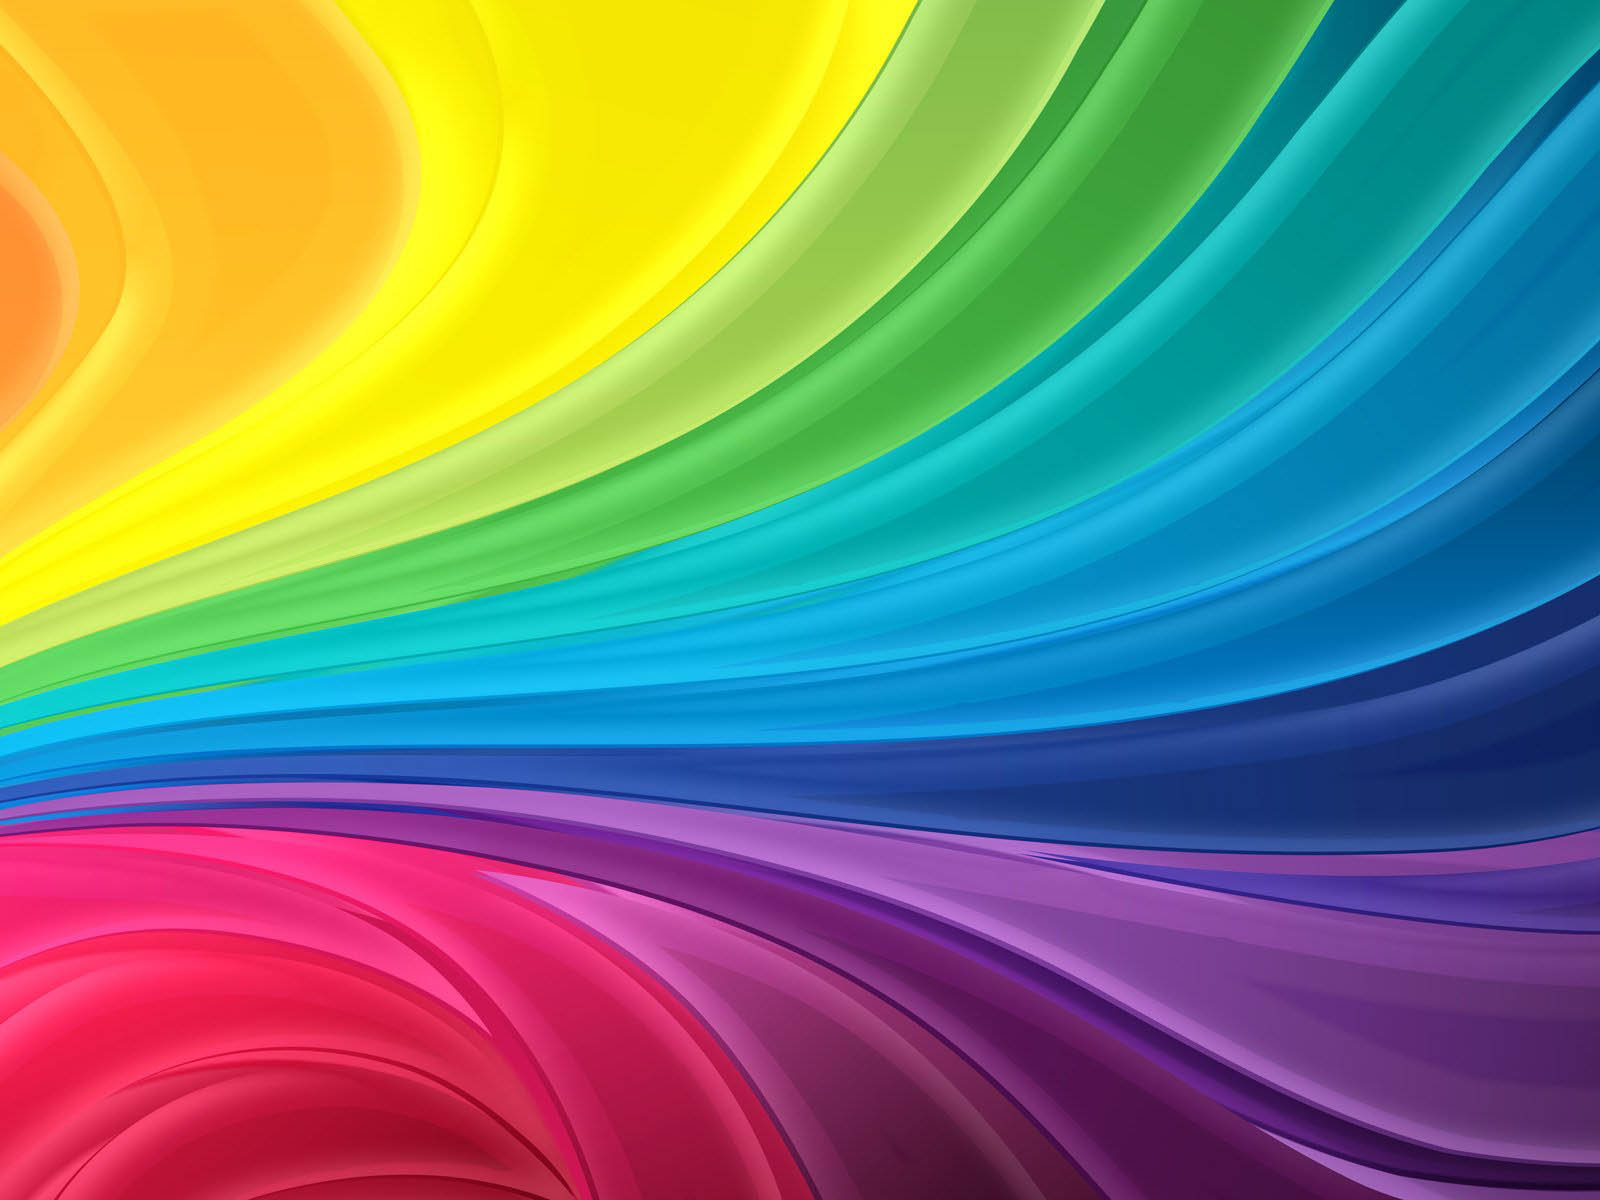 Windows Xp 3d Wallpaper Free Download Wallpapers Abstract Rainbow Colours Wallpapers